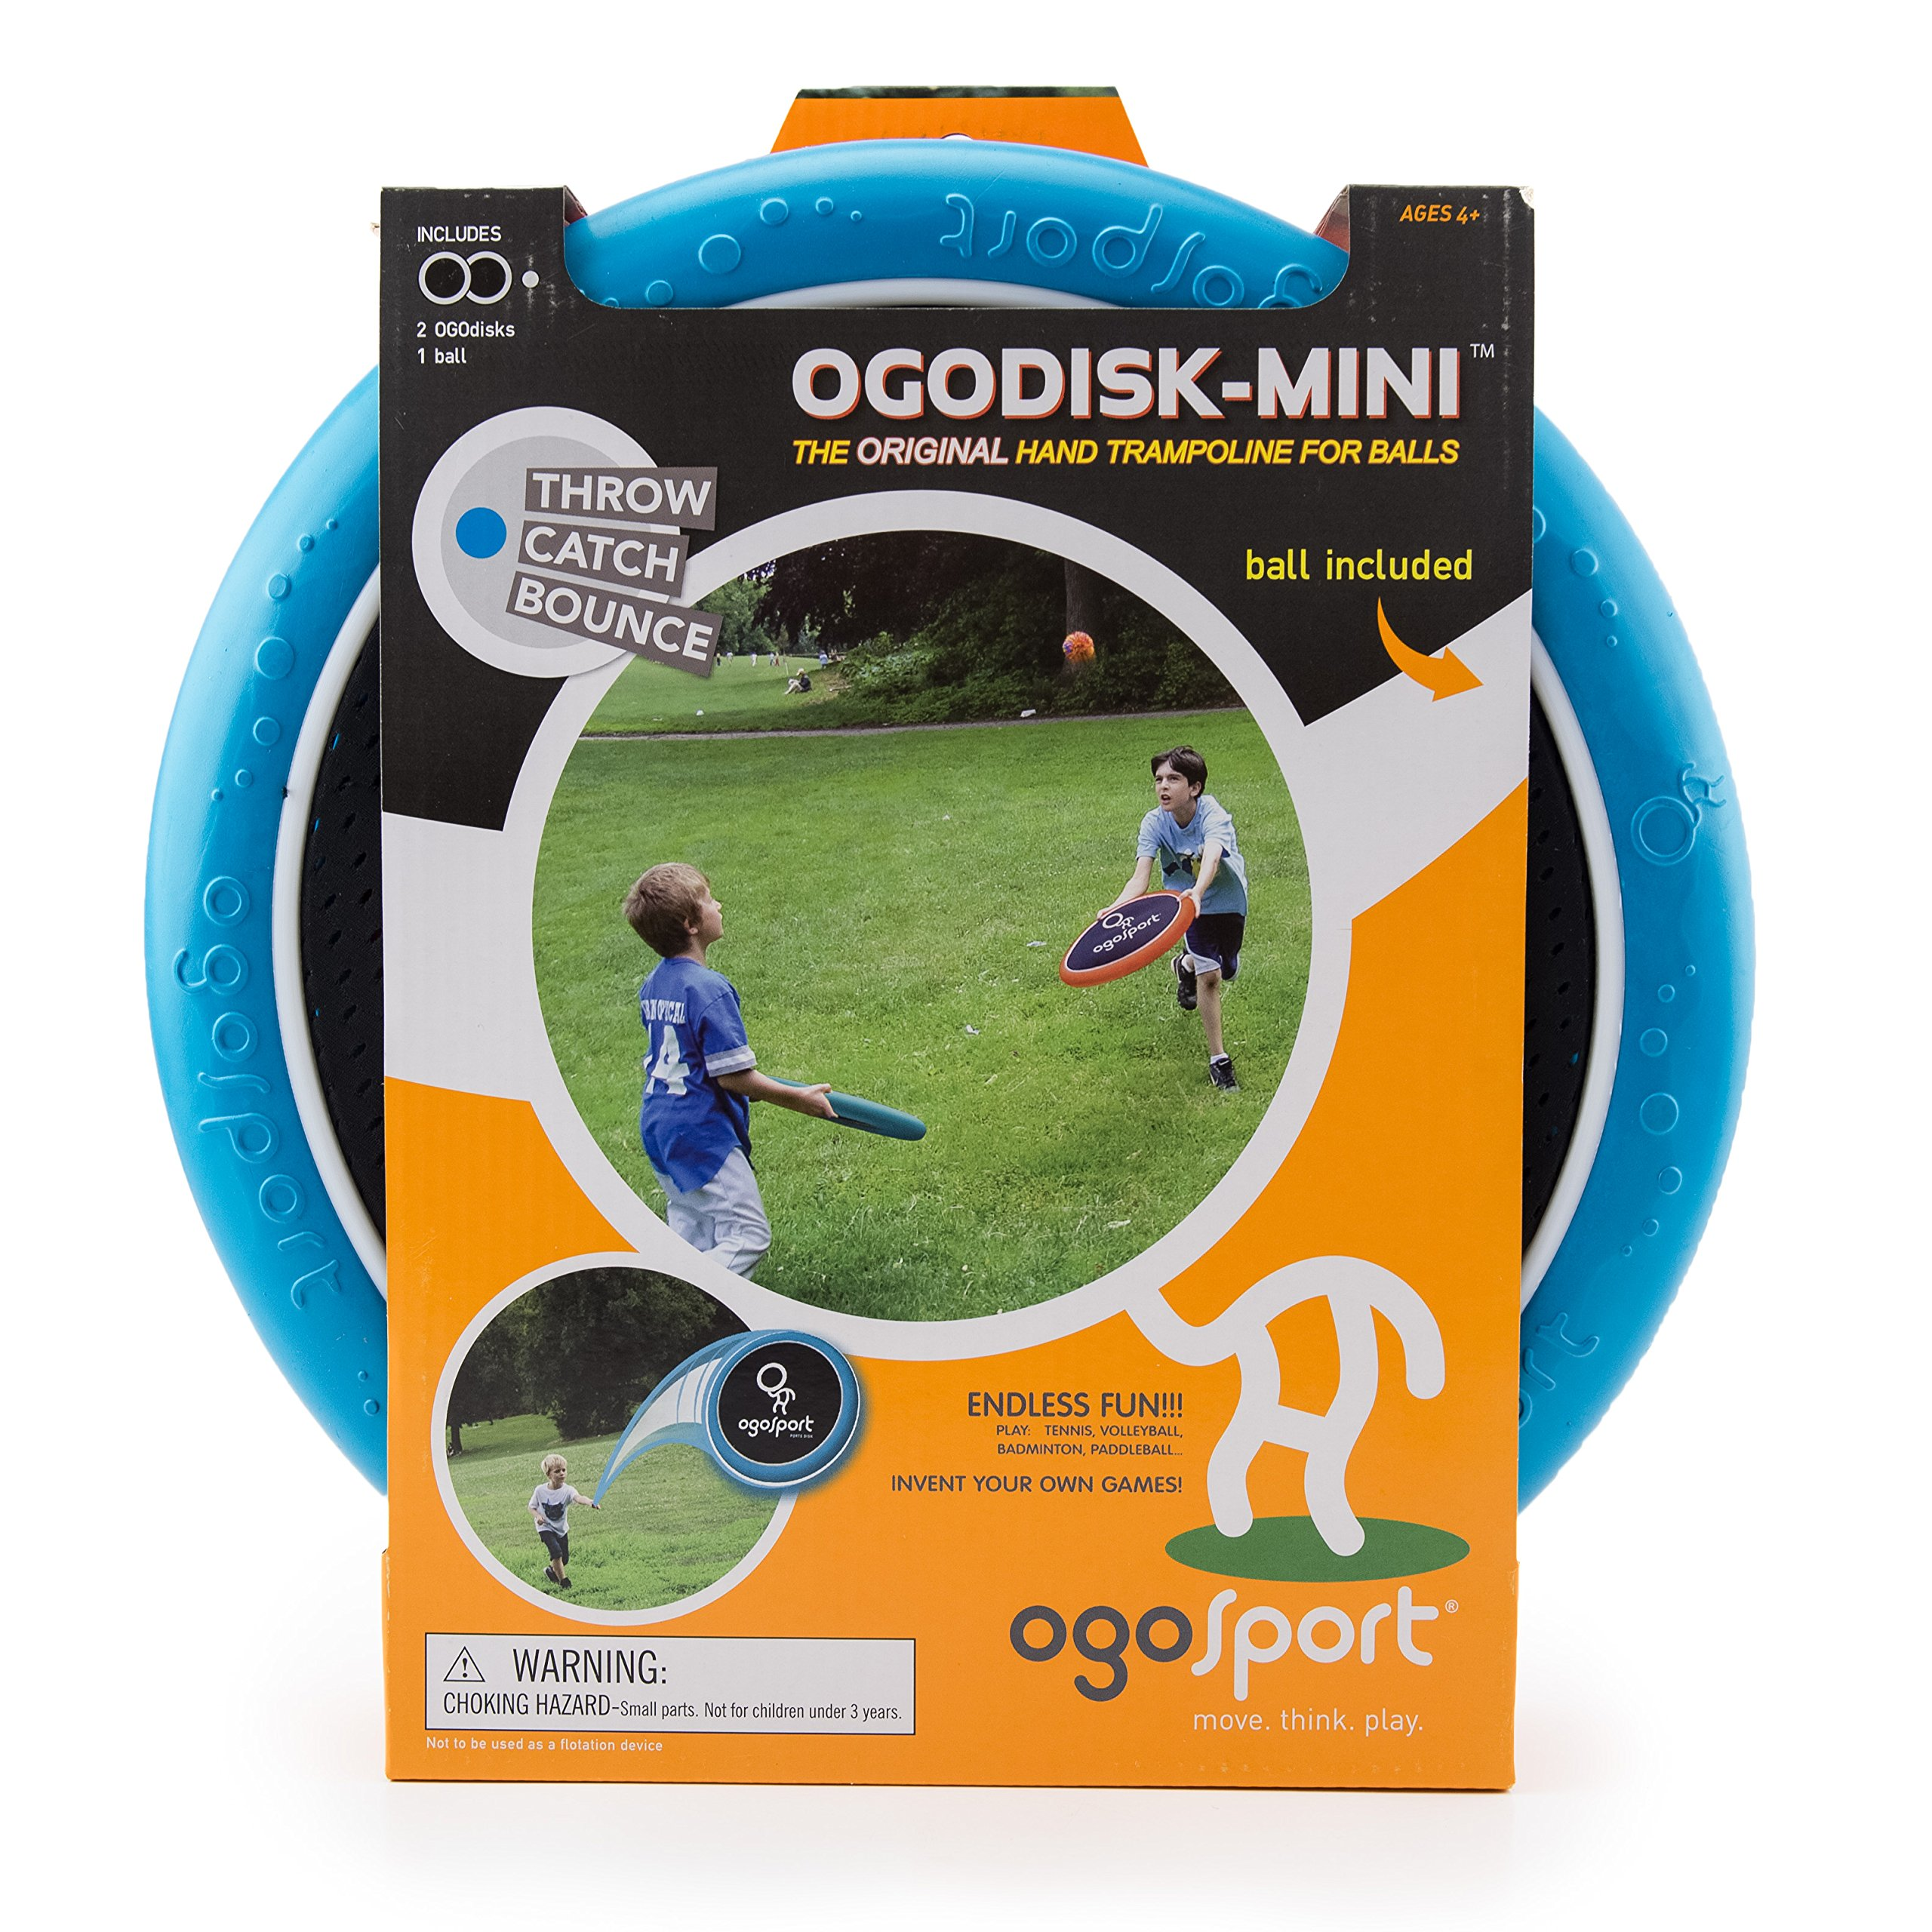 Mini Ogodisk Super Disk Set - Outdoor Family Camping Game for Kids, Adults, and Couples by Ogo Sport